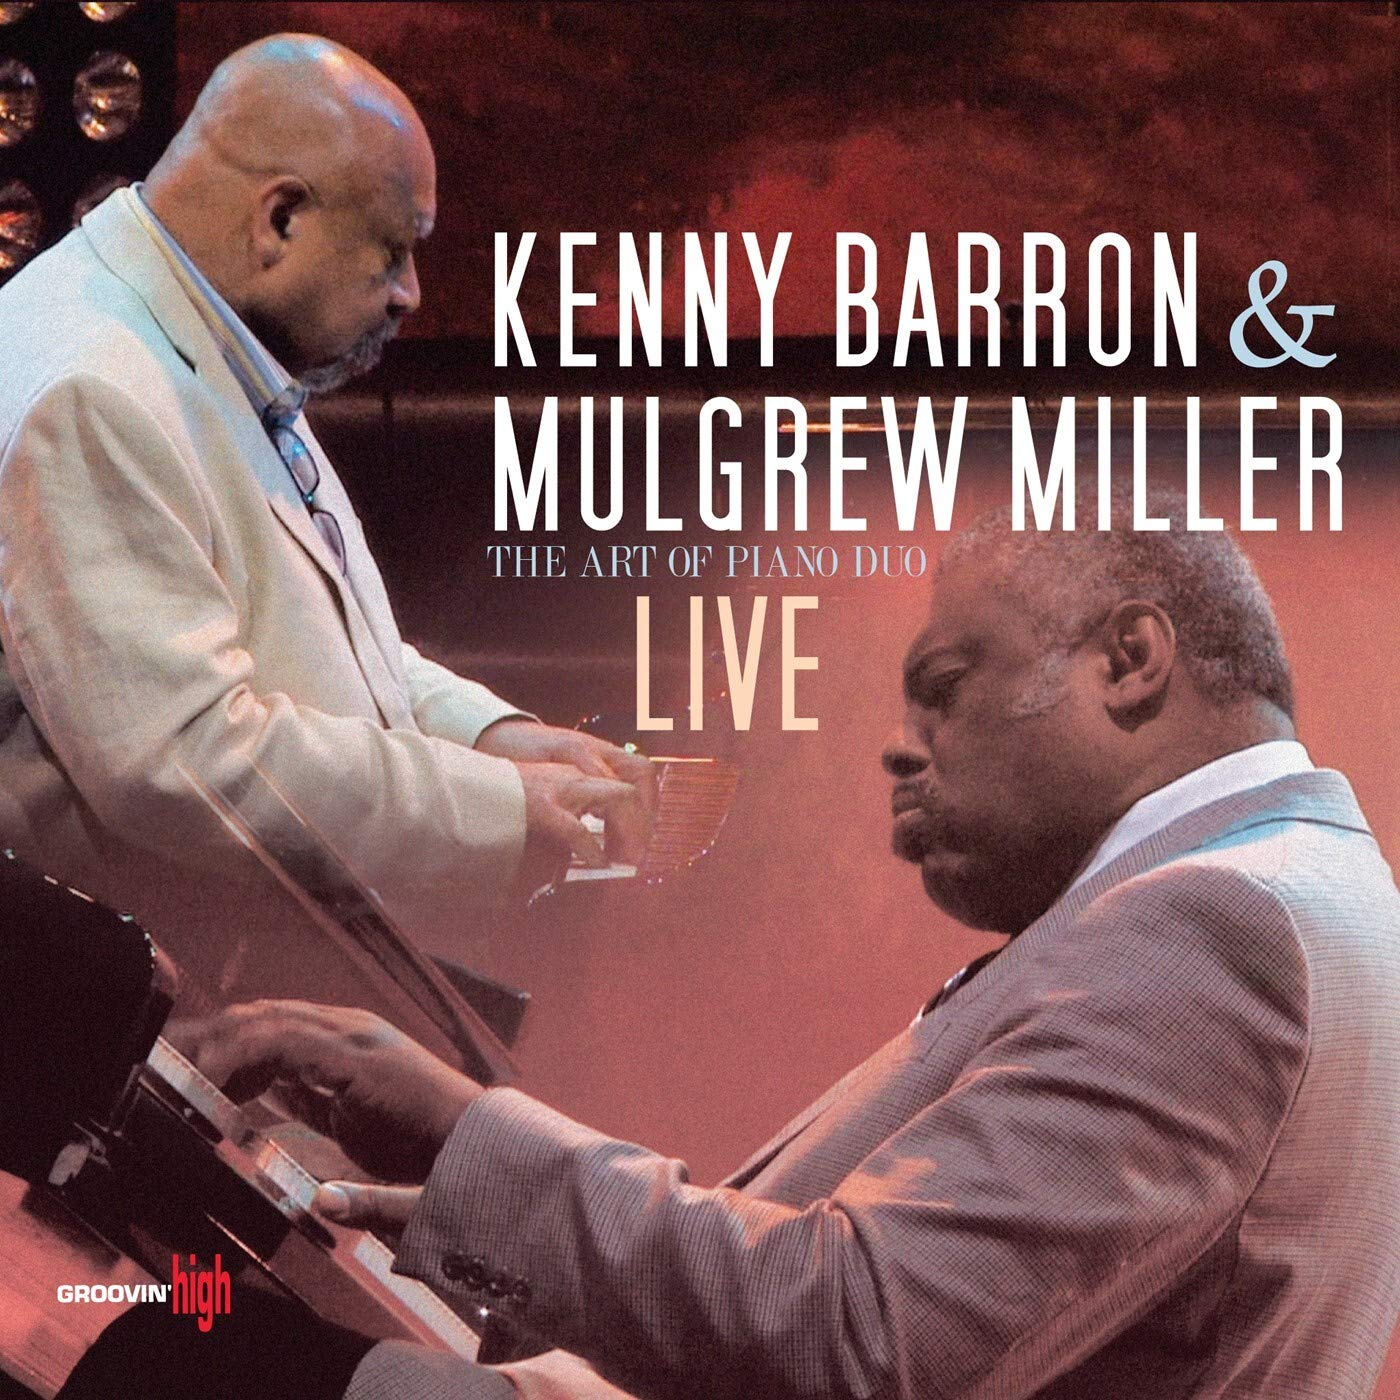 KENNY BARRON - Kenny Barron & Mulgrew Miller : The Art of Piano Duo Live cover